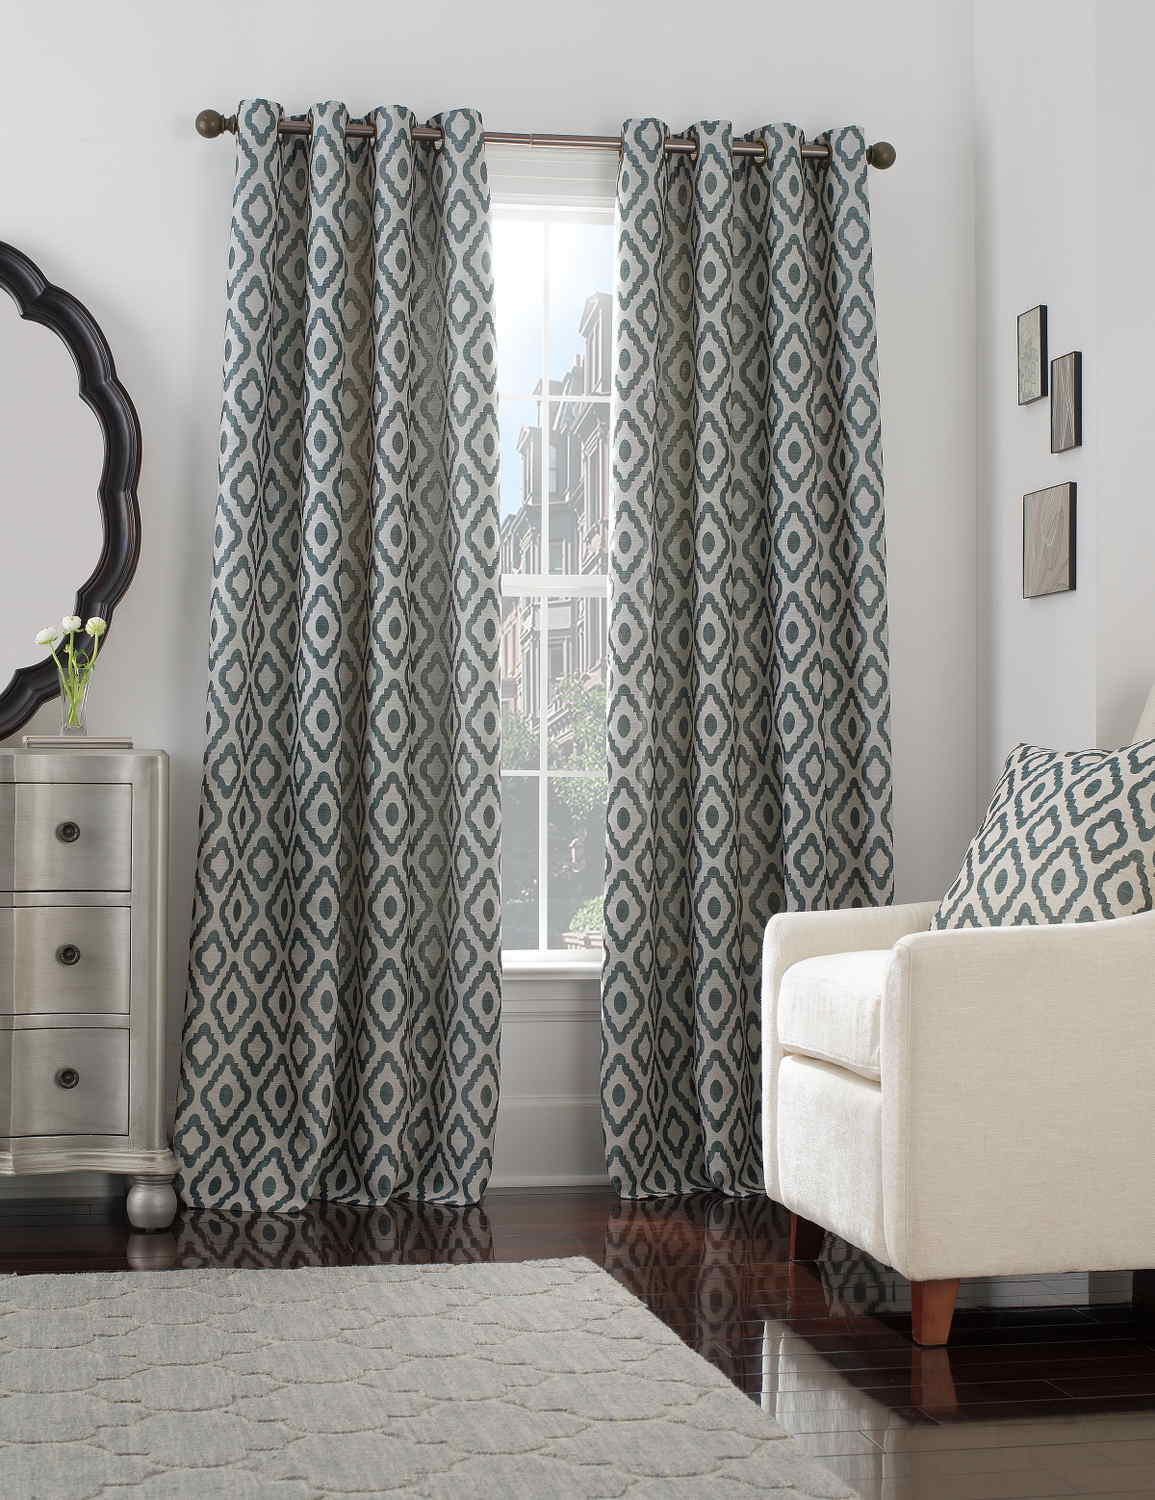 take to my add custom shades be and what drapes curtains rings of drapery break create length the puddle should from hover this img look or measurement bottom floor